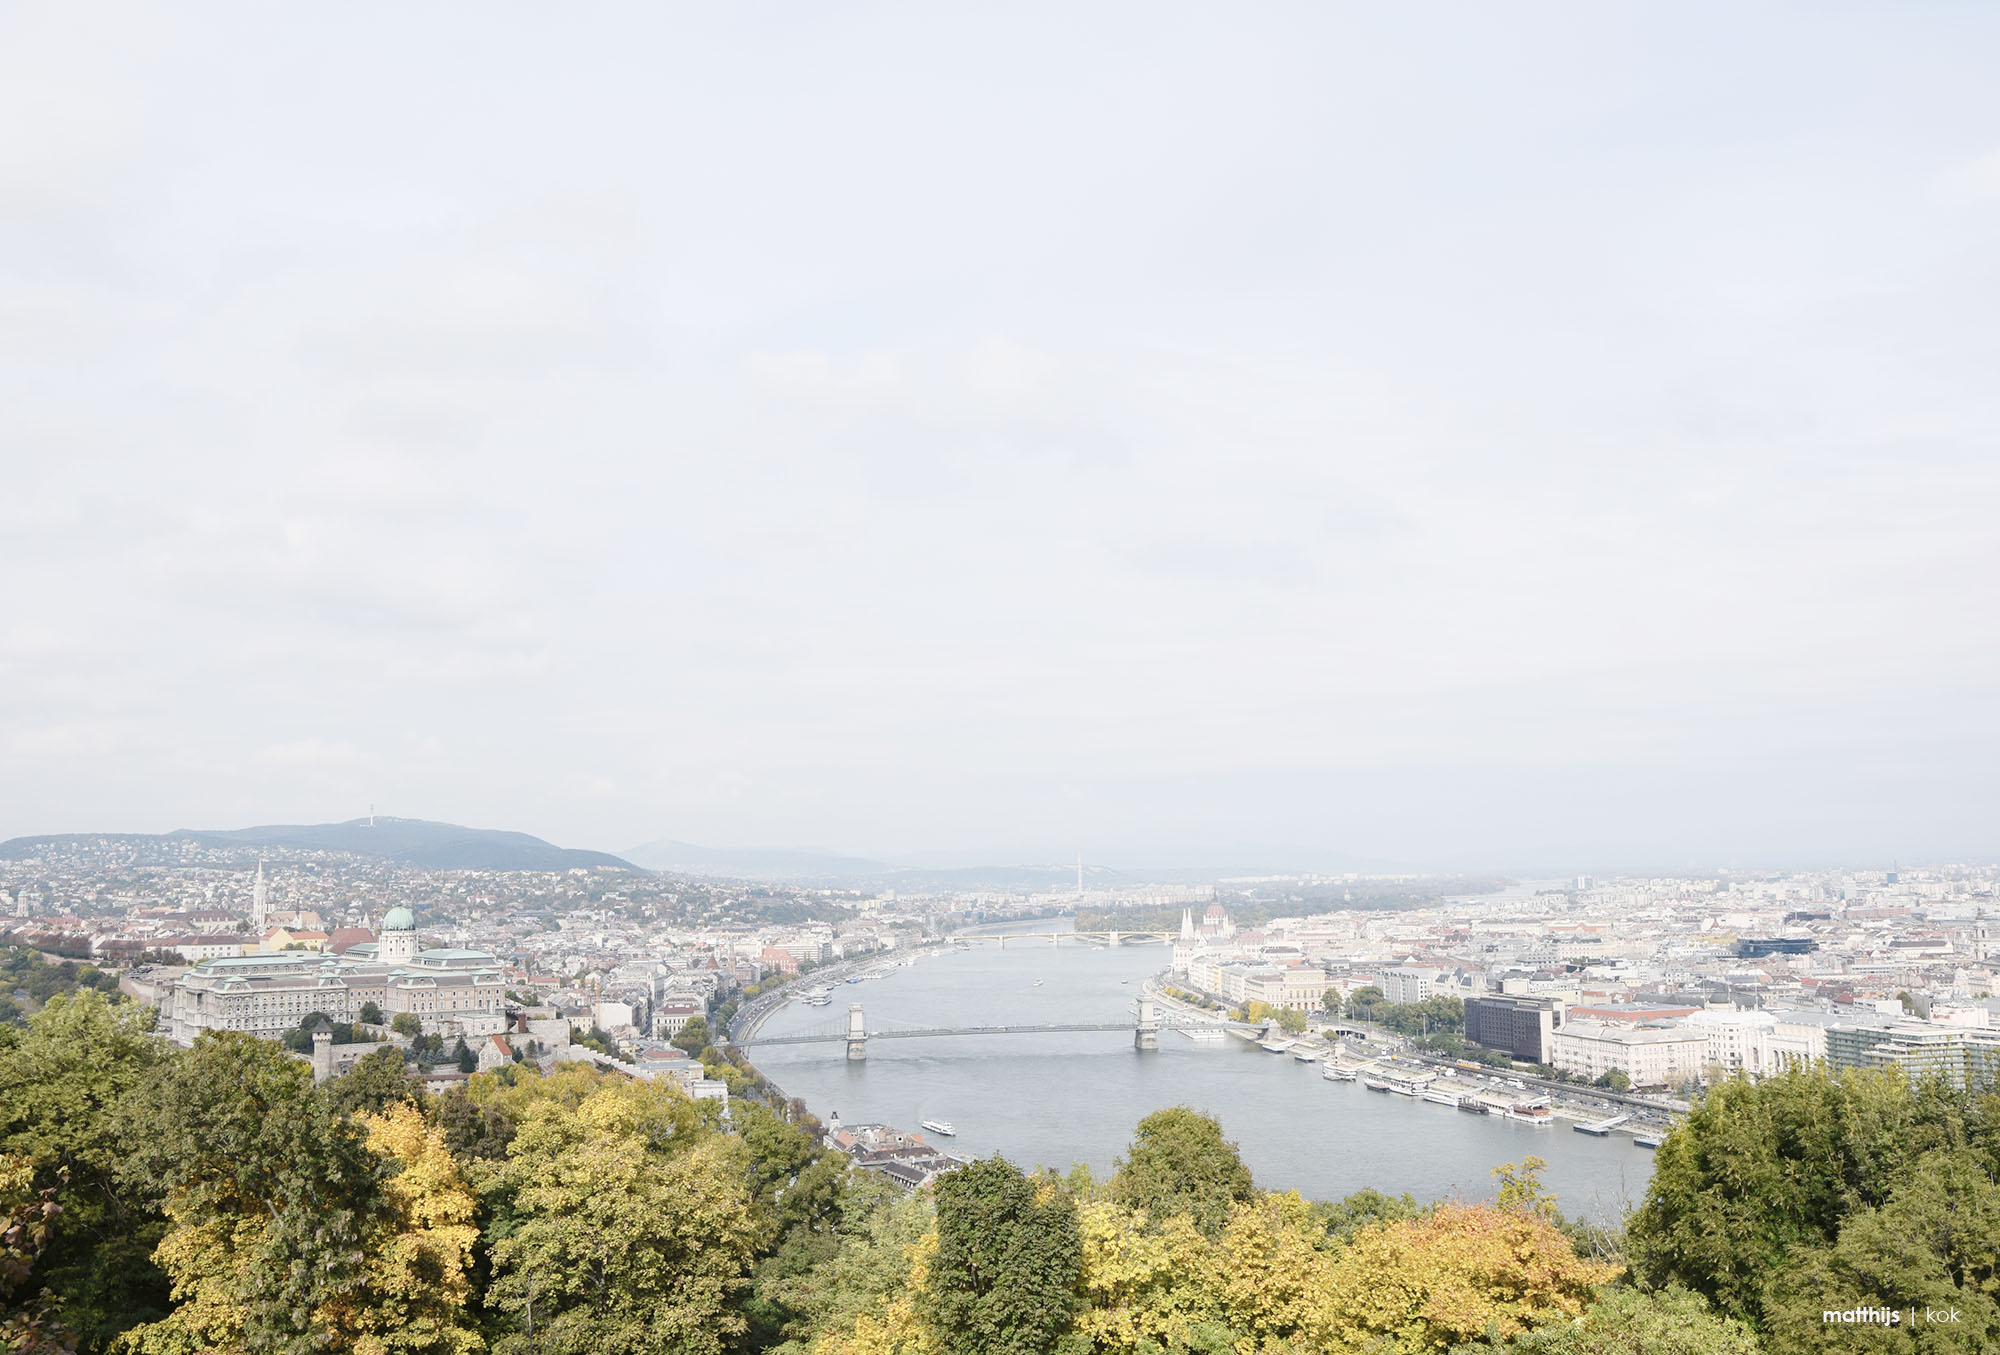 Panoramic view of Budapest and the Danube river from the Citadella | Photo by Matthijs Kok